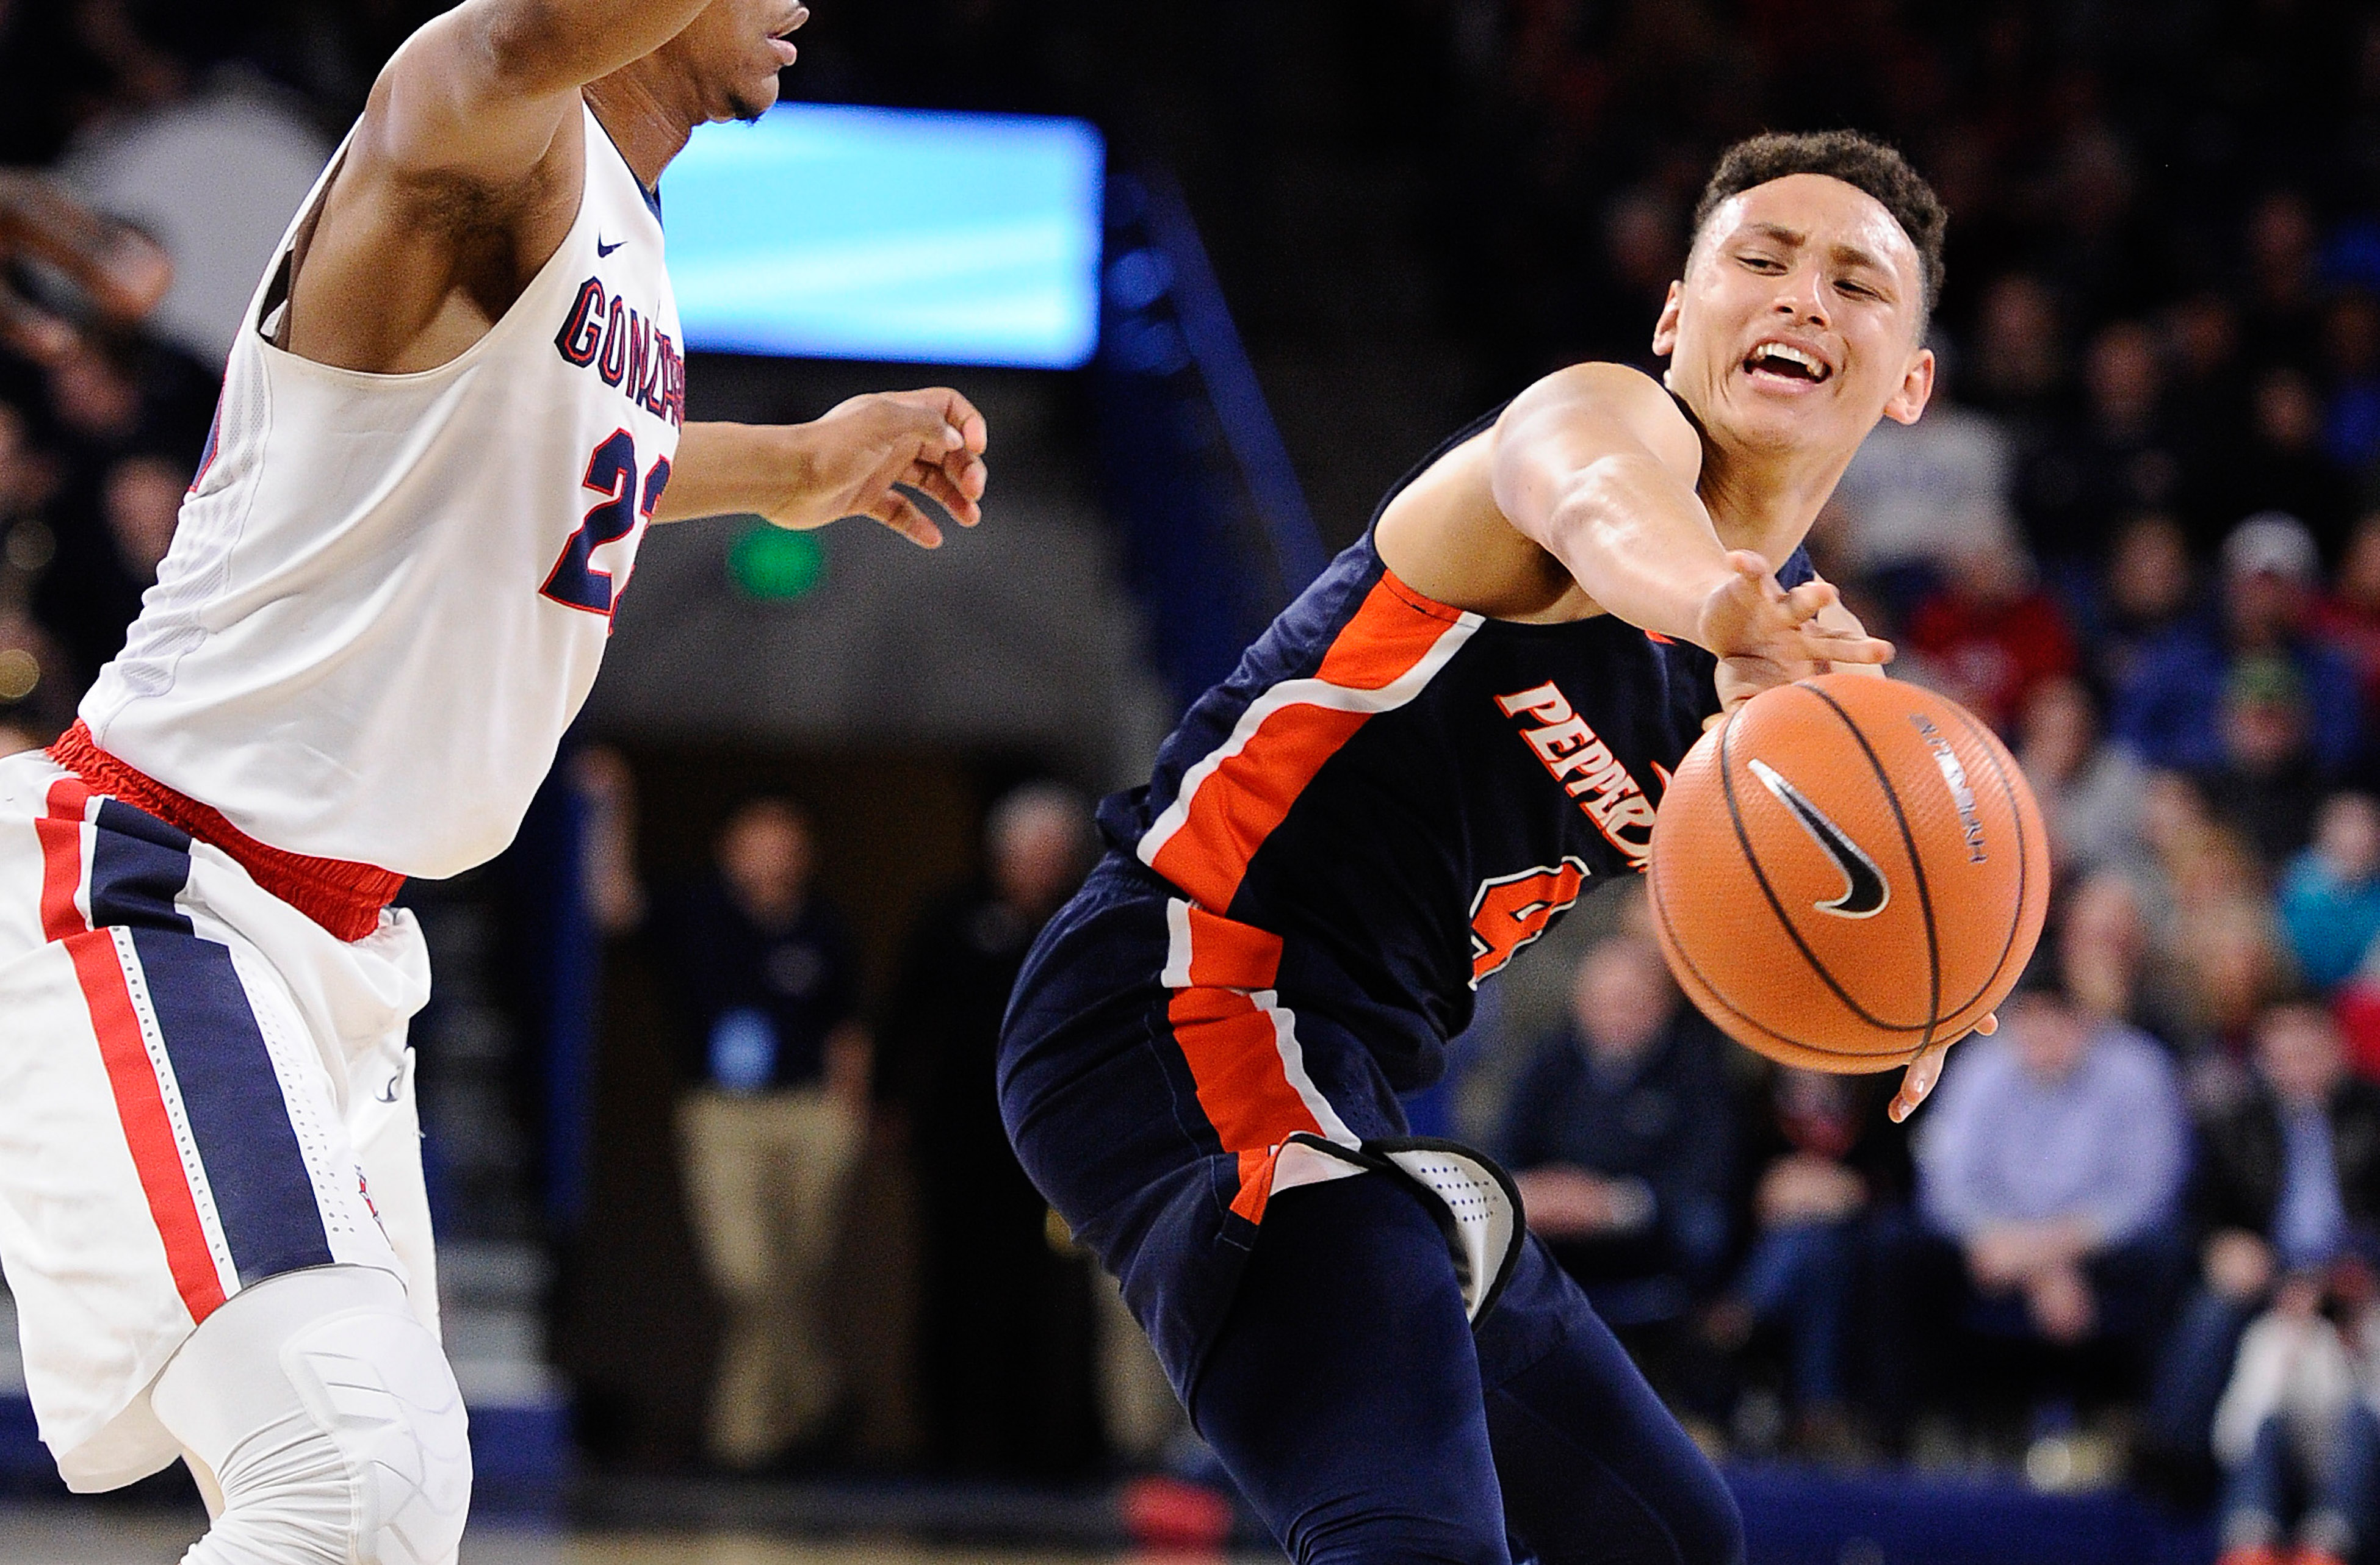 Feb 17, 2018; Spokane, WA, USA; Pepperdine Waves guard Colbey Ross (4) passes the basketball against Gonzaga Bulldogs guard Zach Norvell Jr. (23) during the second half at McCarthey Athletic Center. The Bulldogs won 81-76. Mandatory Credit: